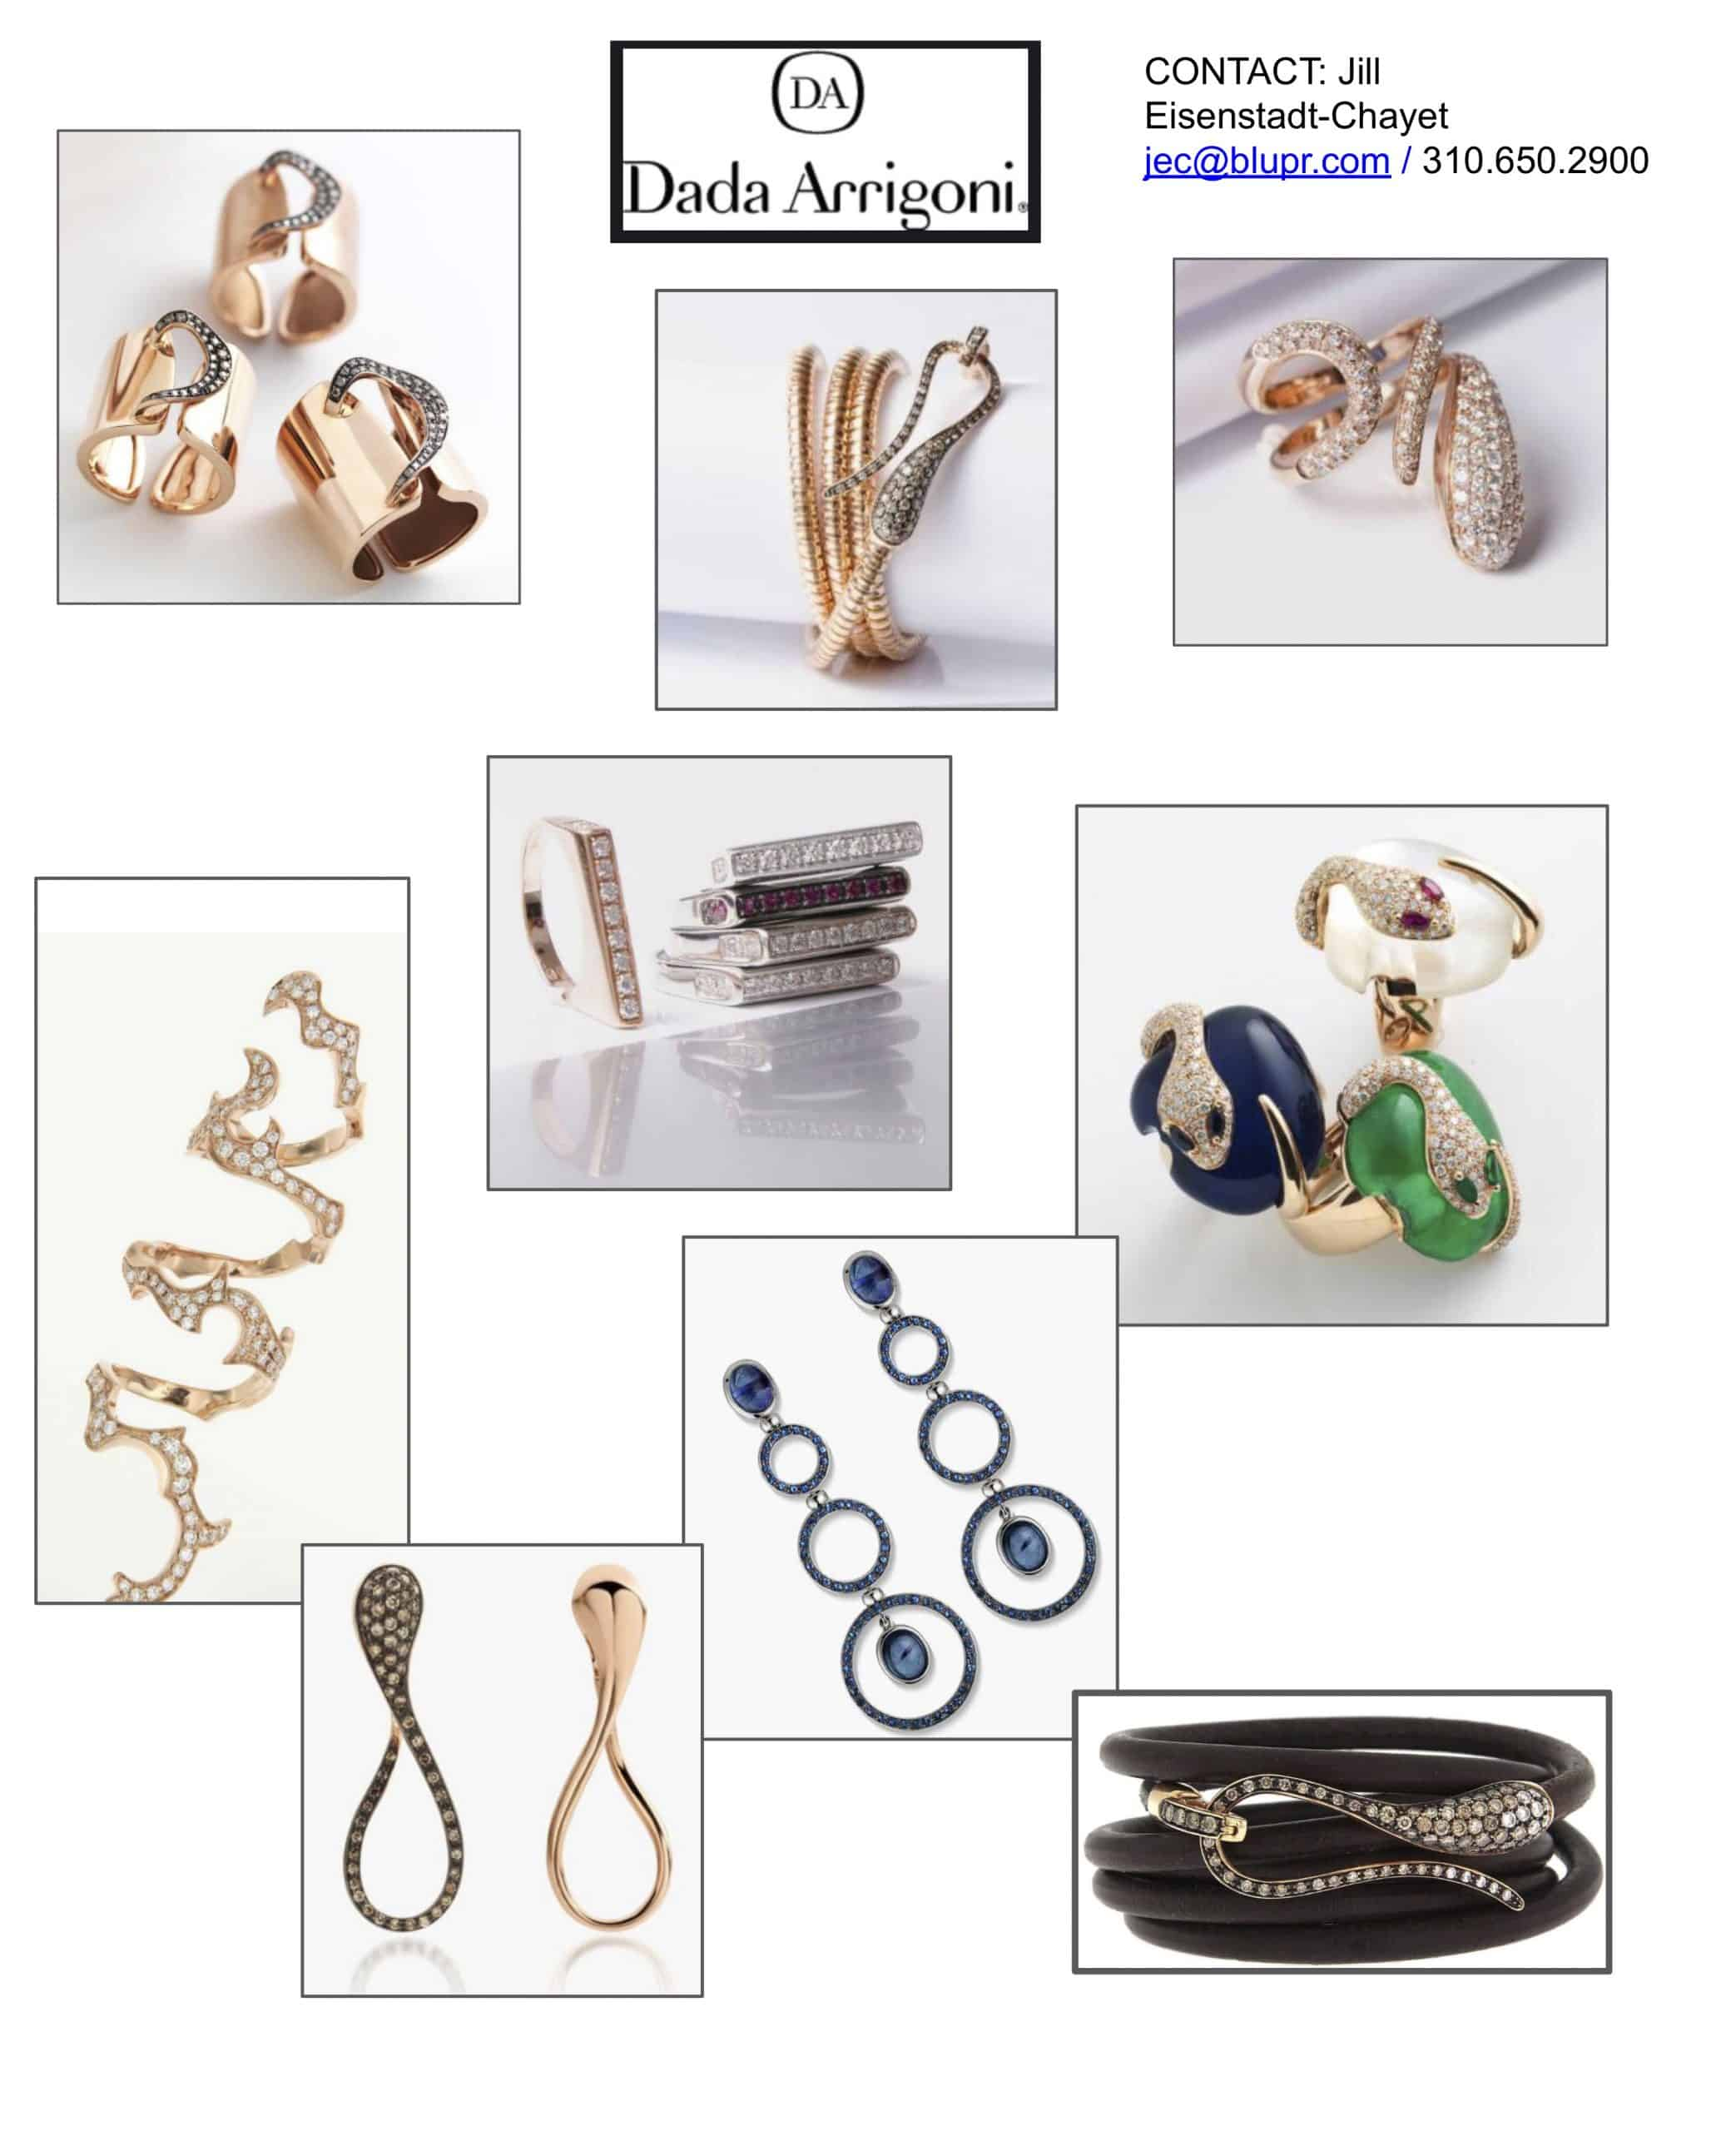 Daniella Arrigoni brings DADA ARRIGONI Made in Italy Collection to US after 30 Years